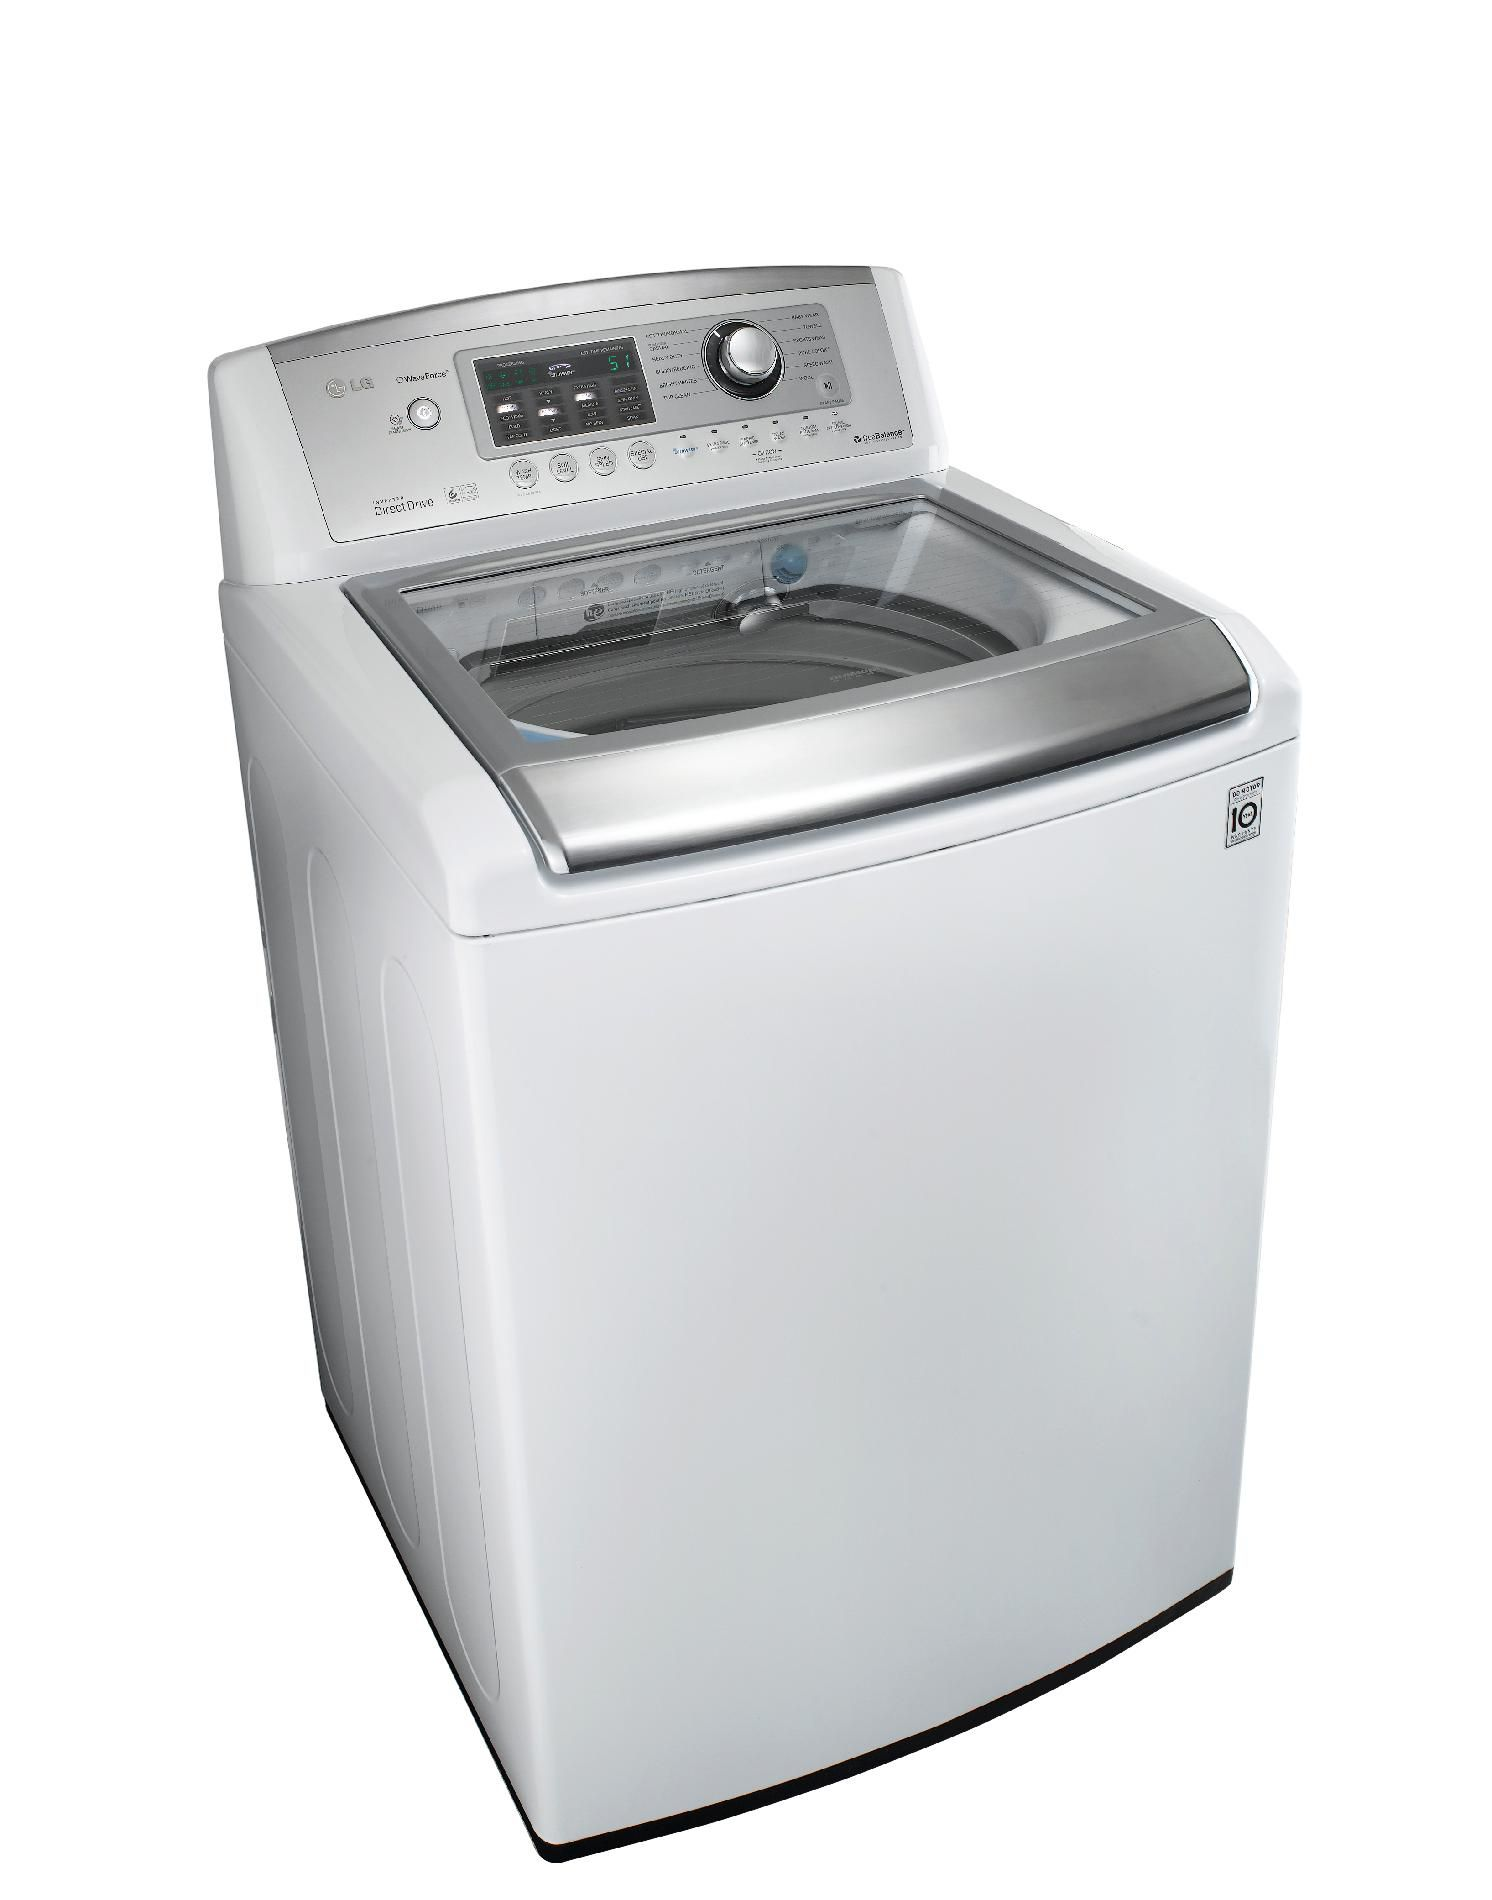 LG 4.7 cu. ft. High-Efficiency Top-Load Washer - White